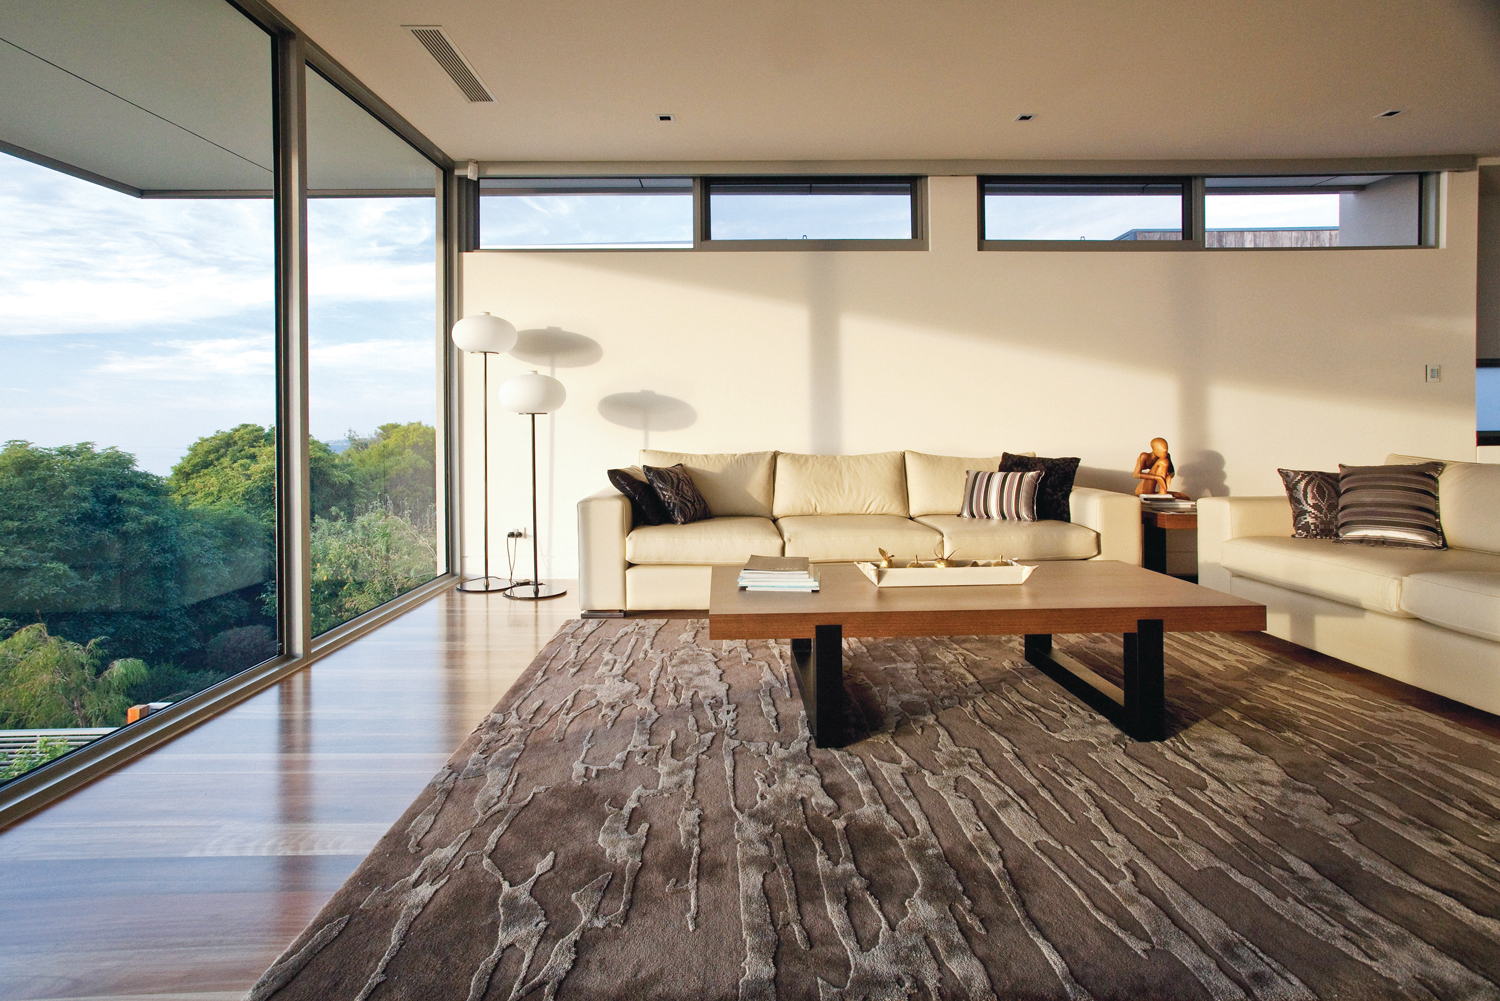 Spacious living room with stunning views.